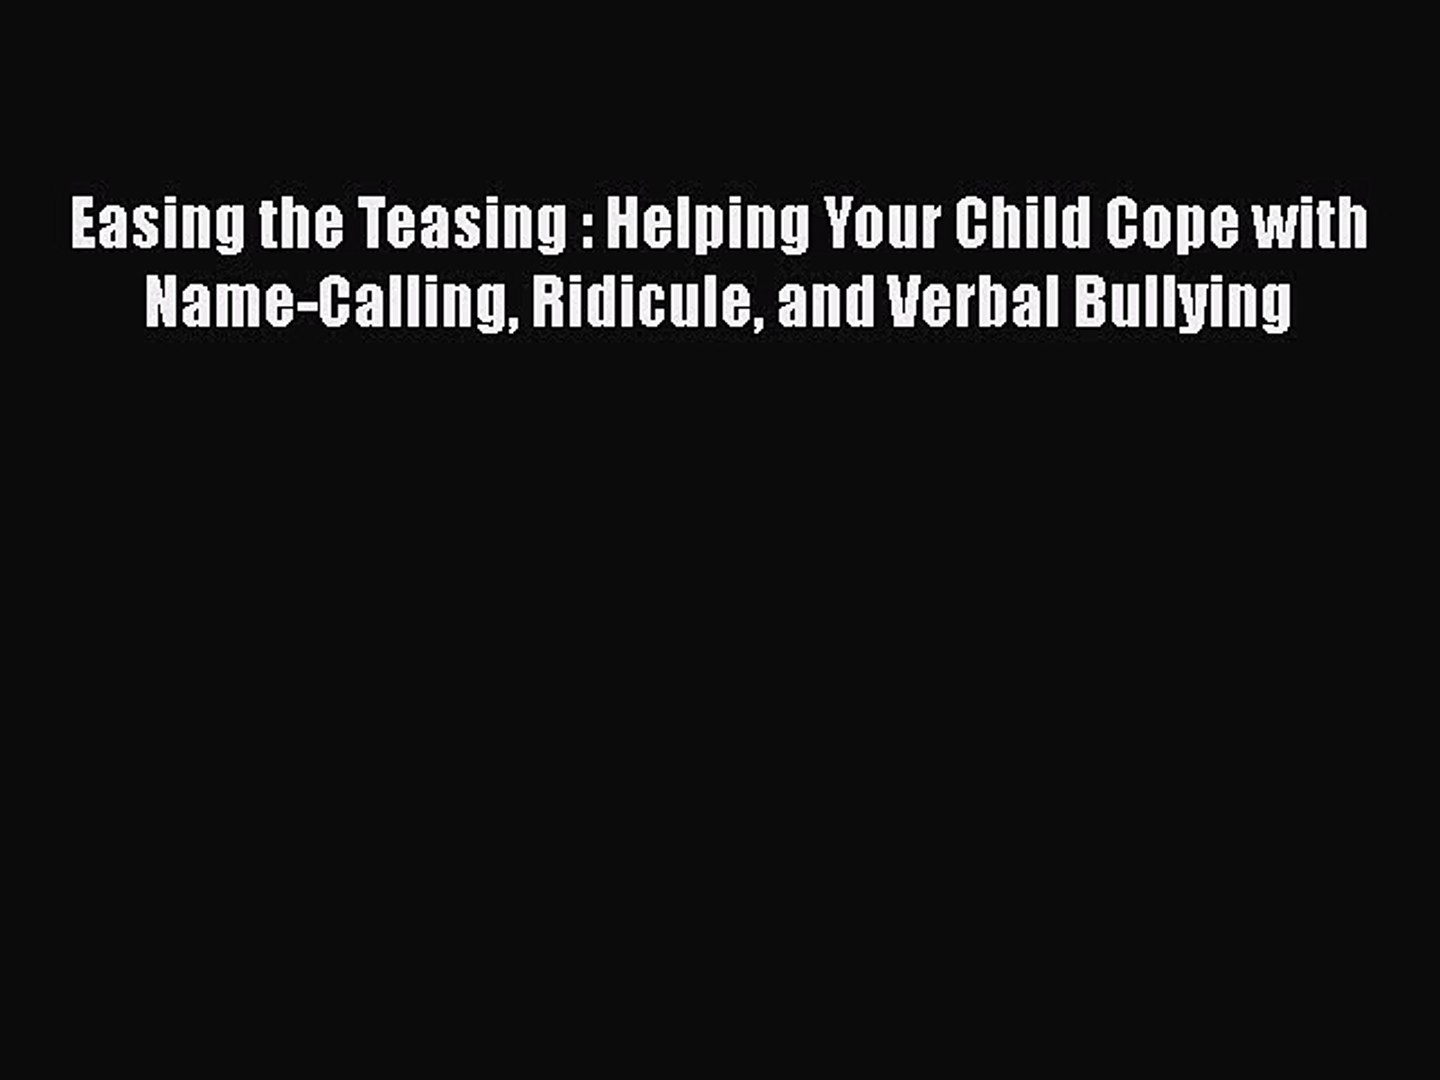 Easing the teasing: helping your child cope with name-calling, ridicule, and verbal bullying